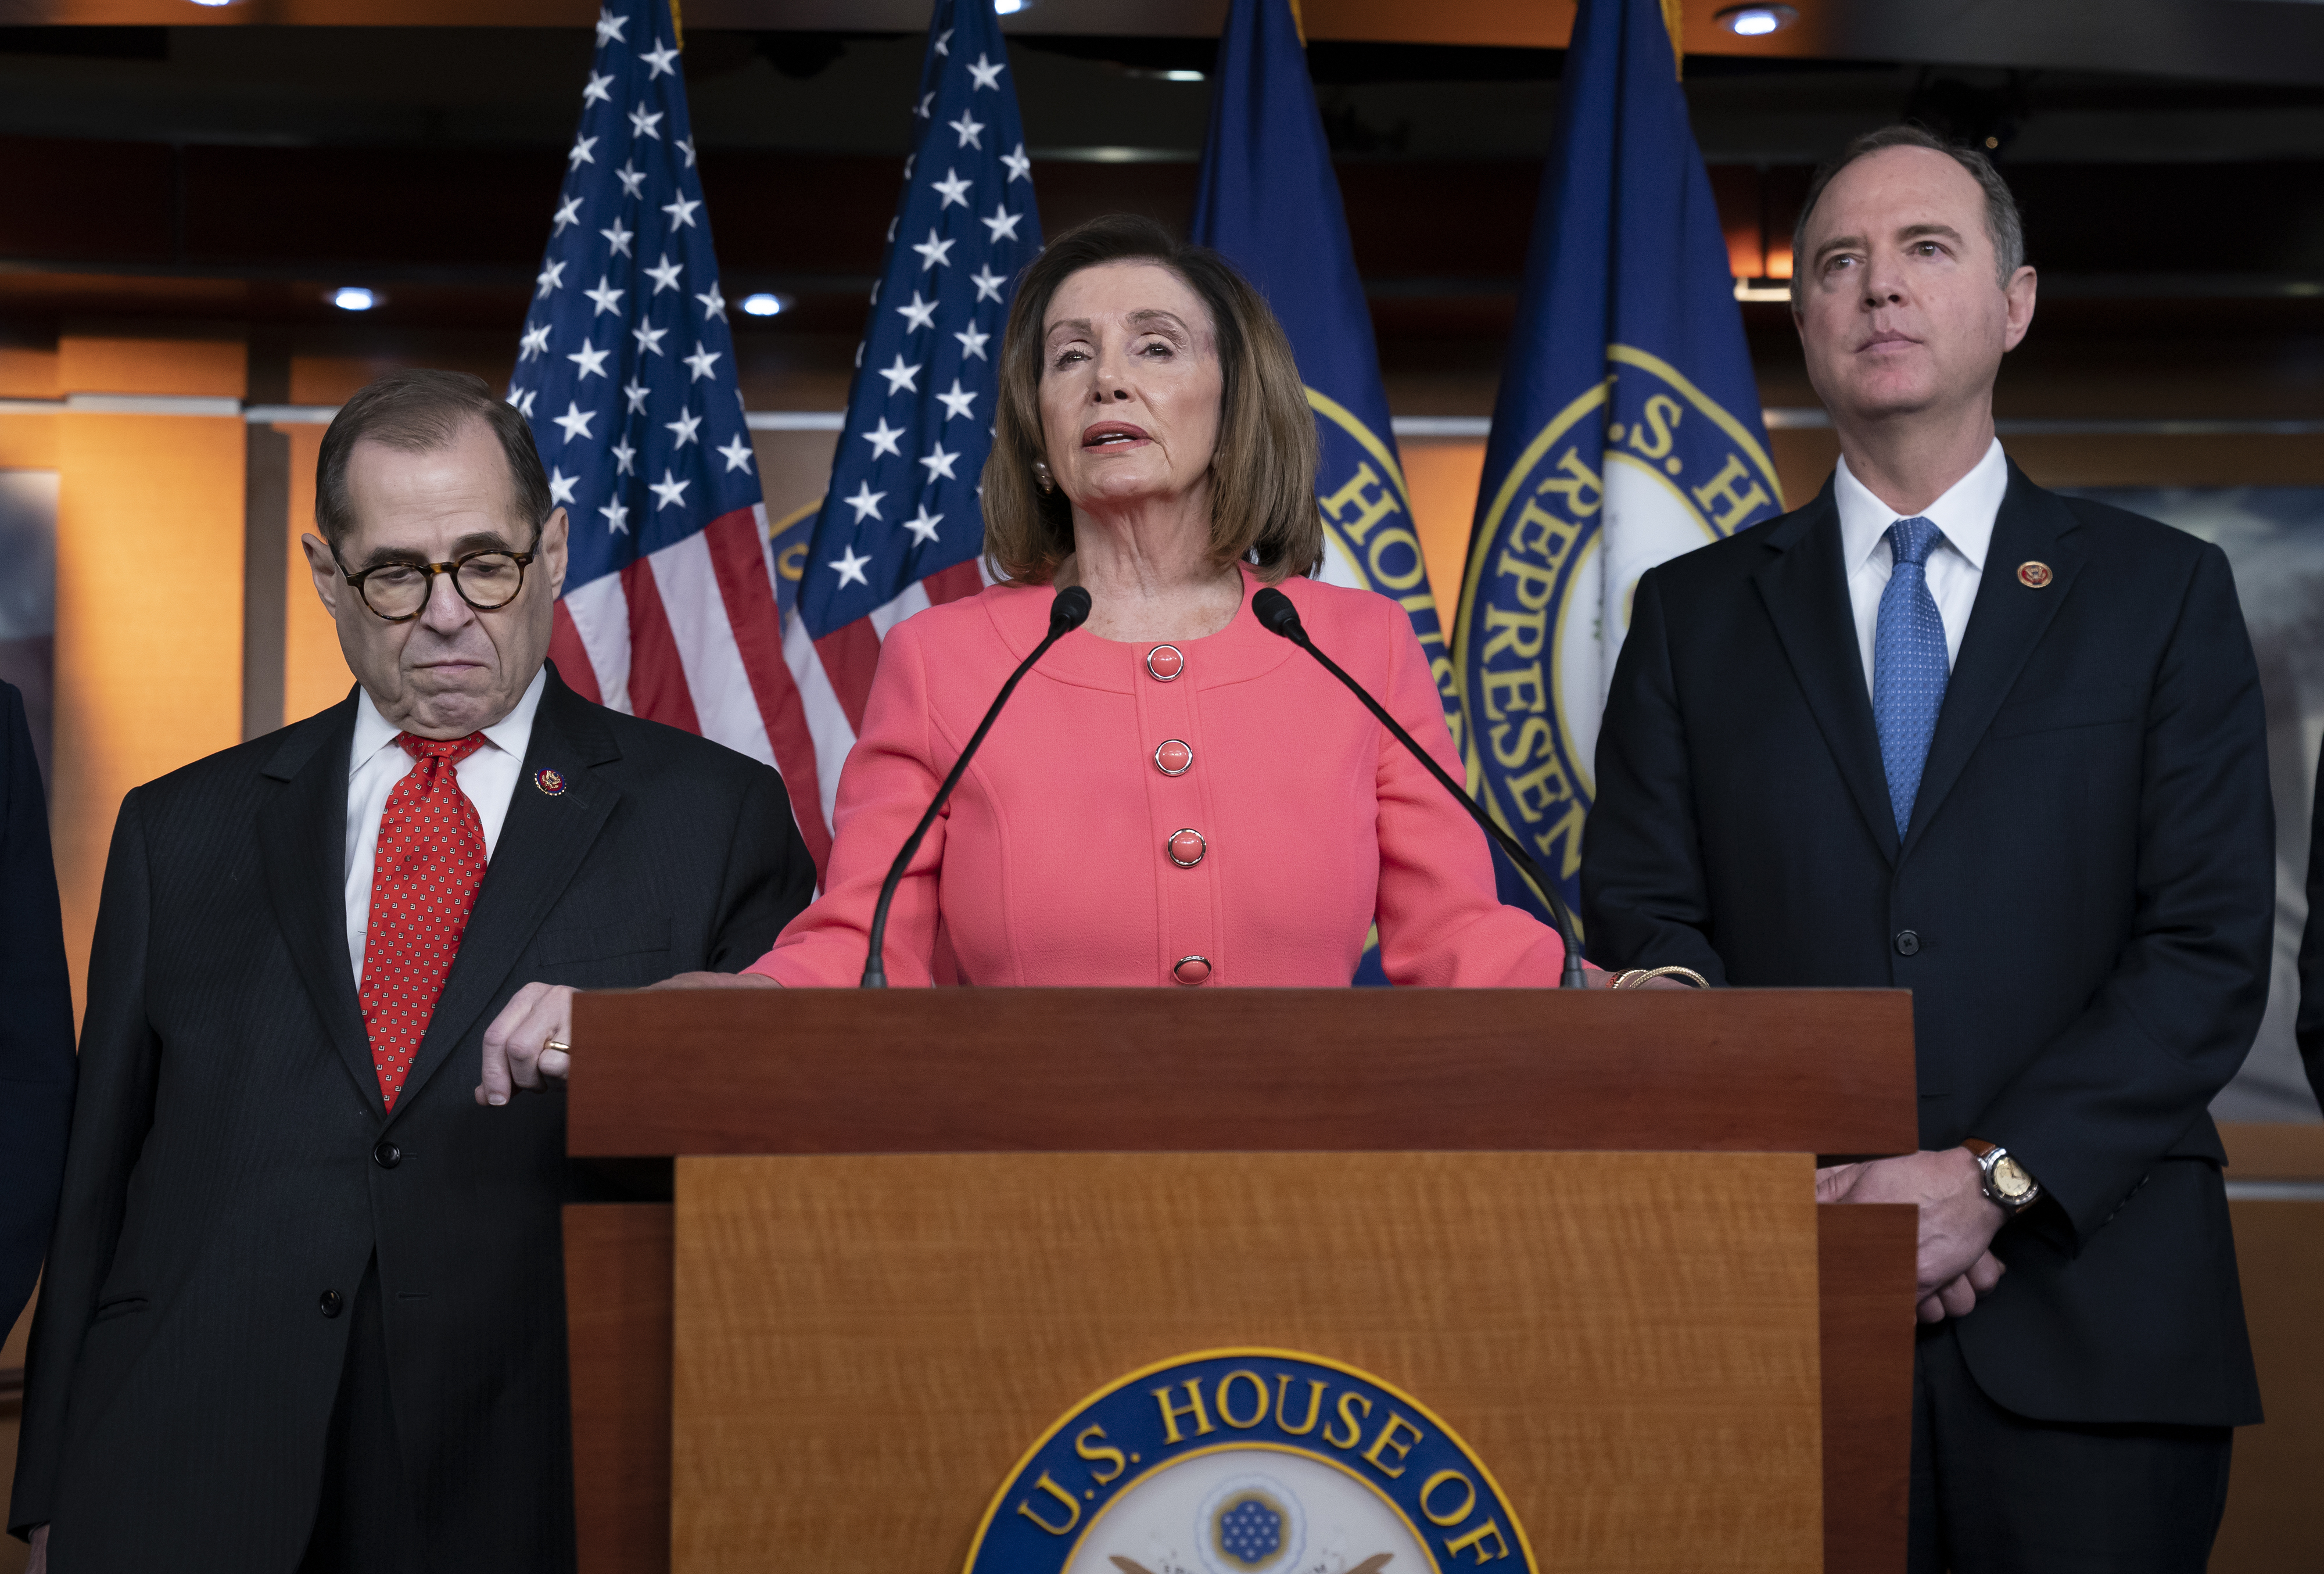 House Democrats kick off election year with head start in fundraising